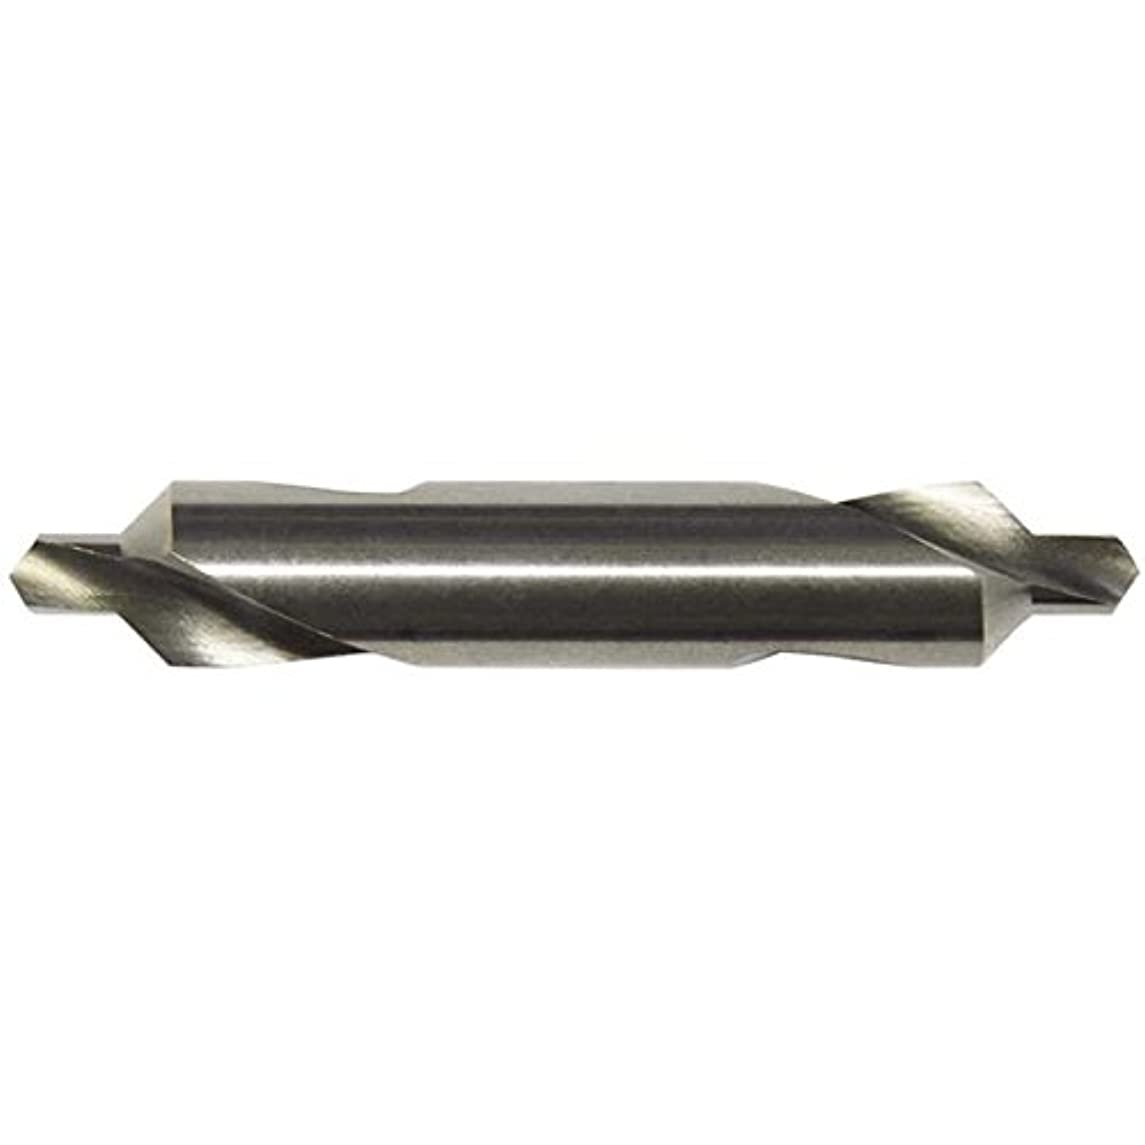 KEO 10020#3-0 RH Combined Drill and Countersink, 0.125